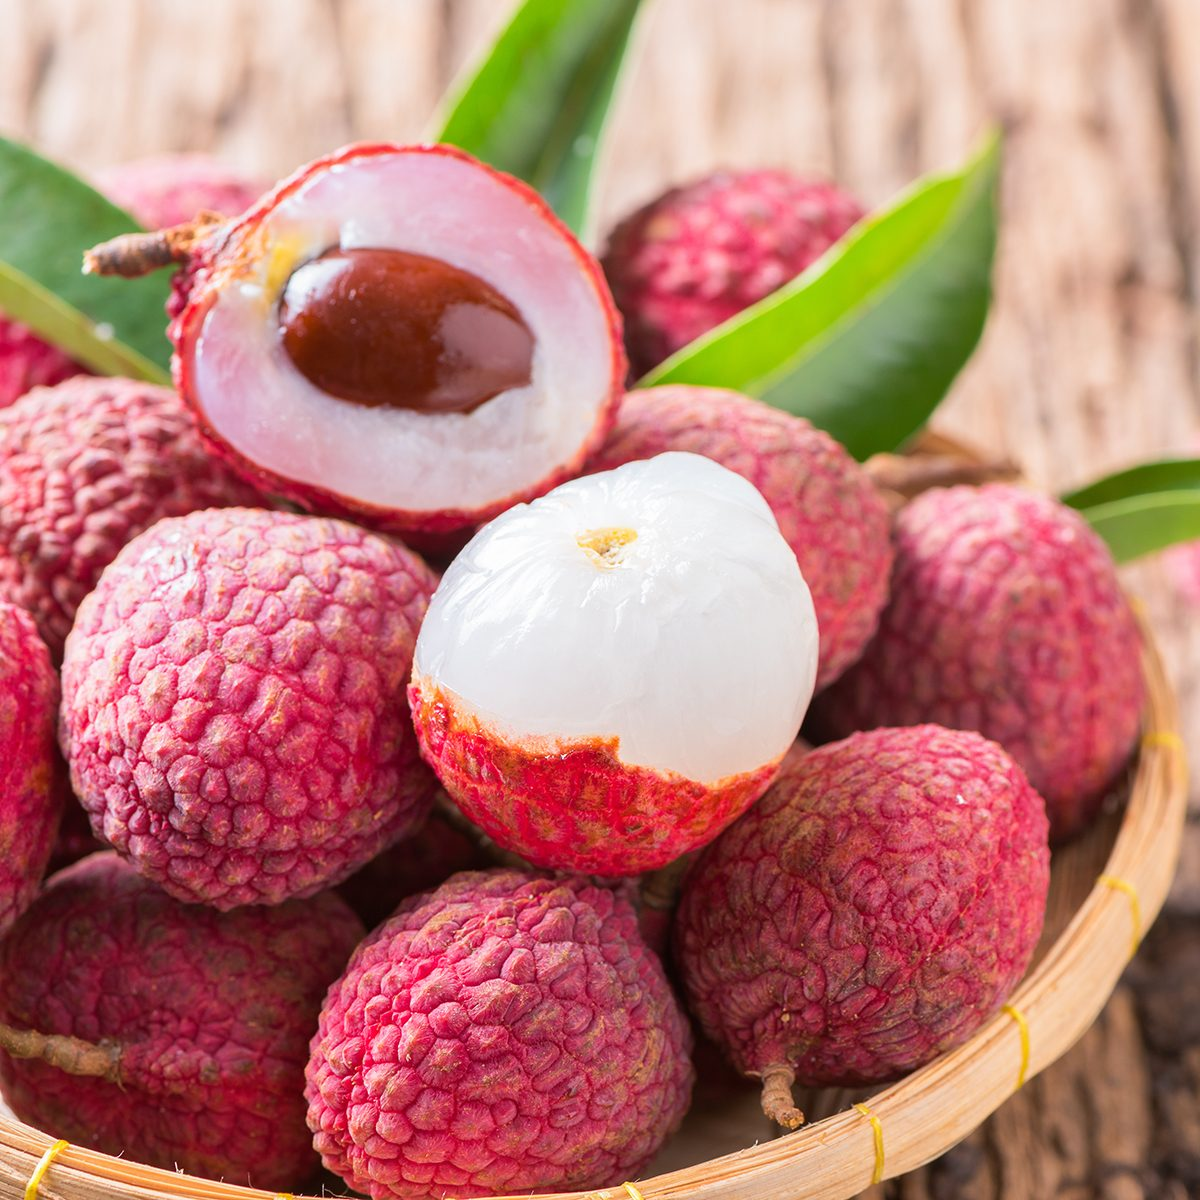 fresh organic lychee fruit on bamboo basket and old wood background